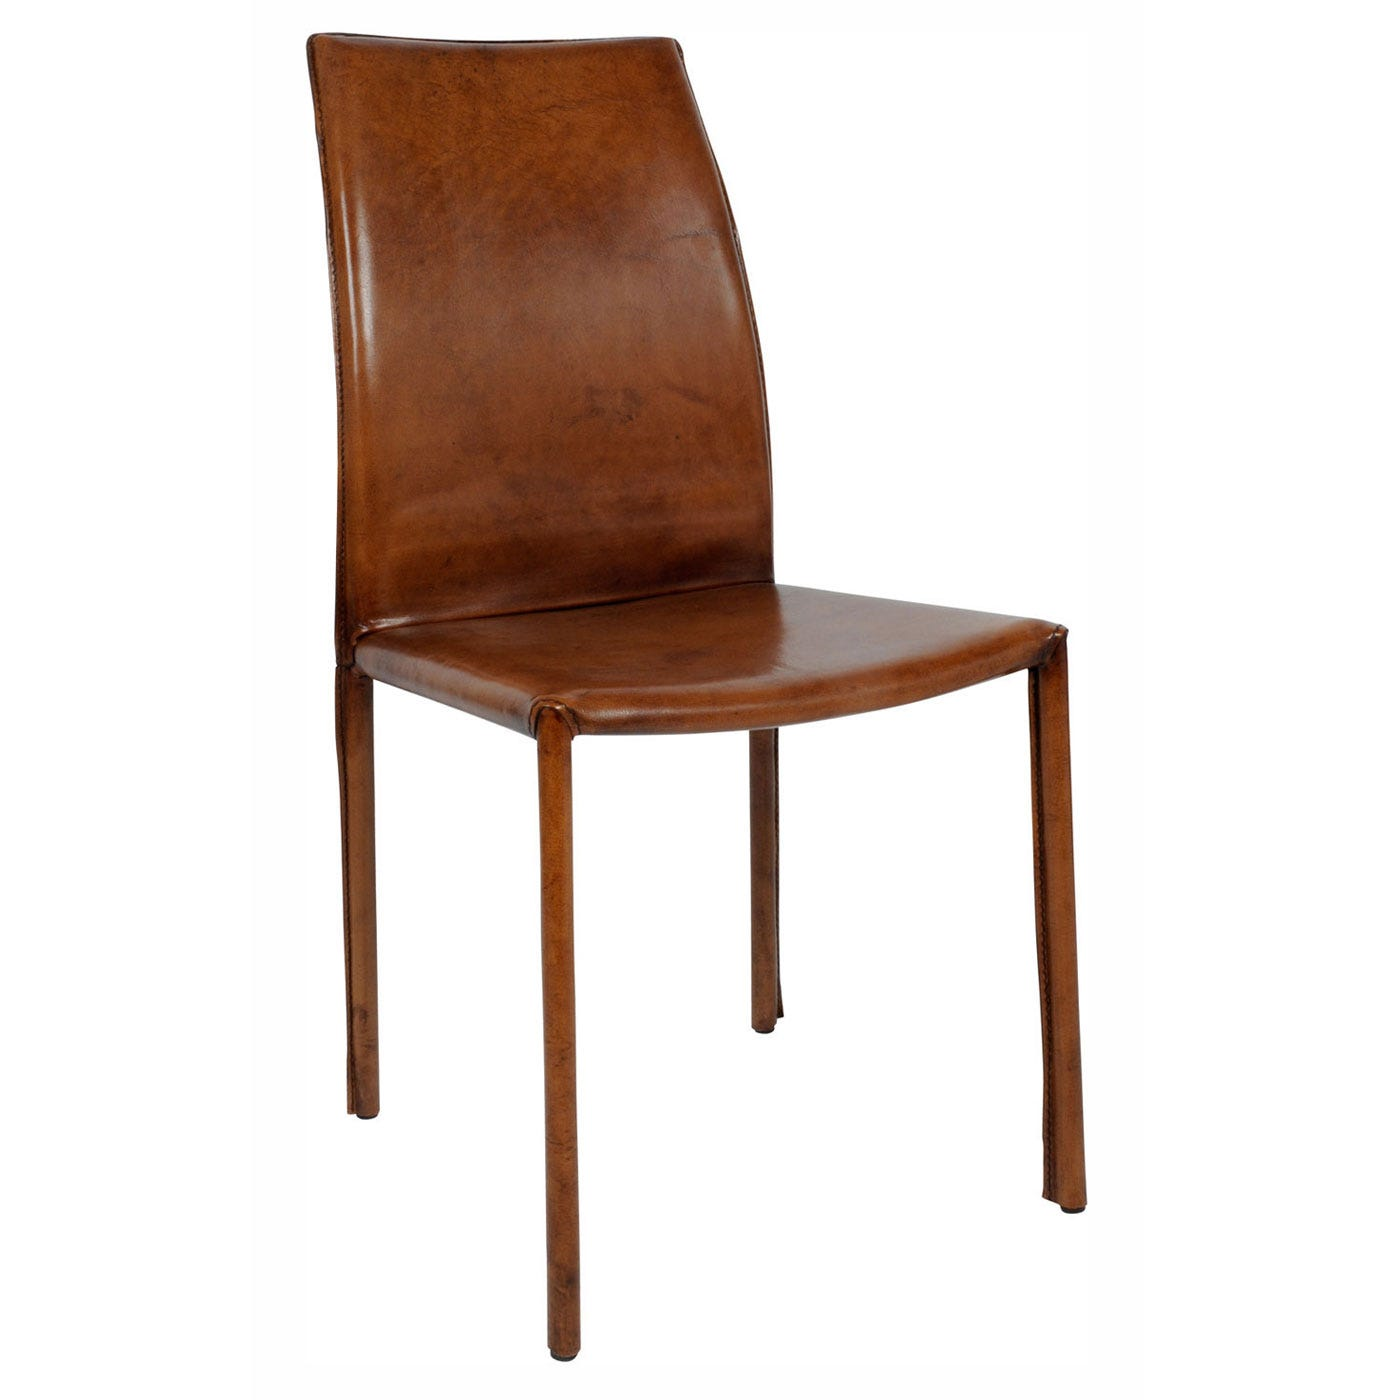 Heals Buffalo Side Chair - Dining room side chairs